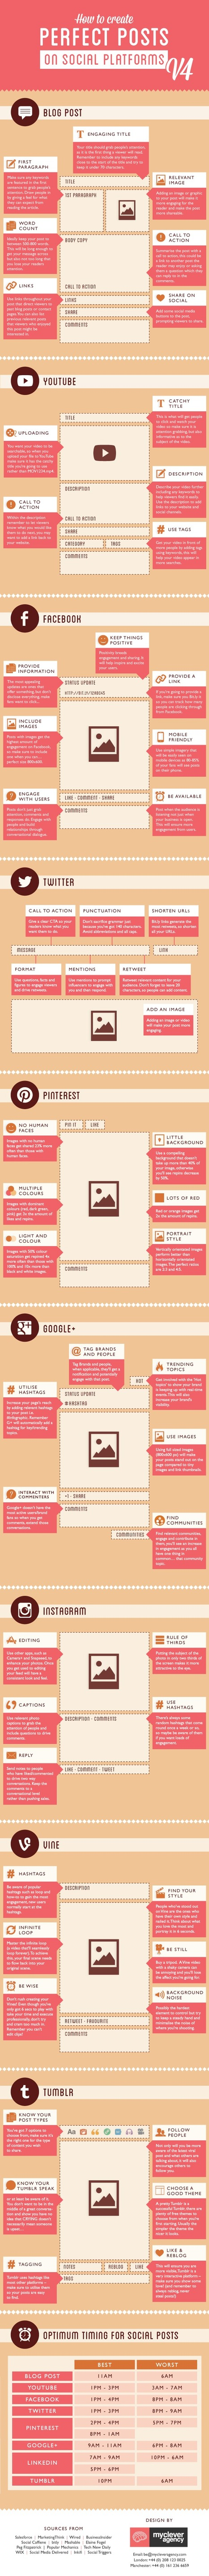 The Art of Creating Perfect Social Media Posts - infographic | Infographics and Social Media | Scoop.it